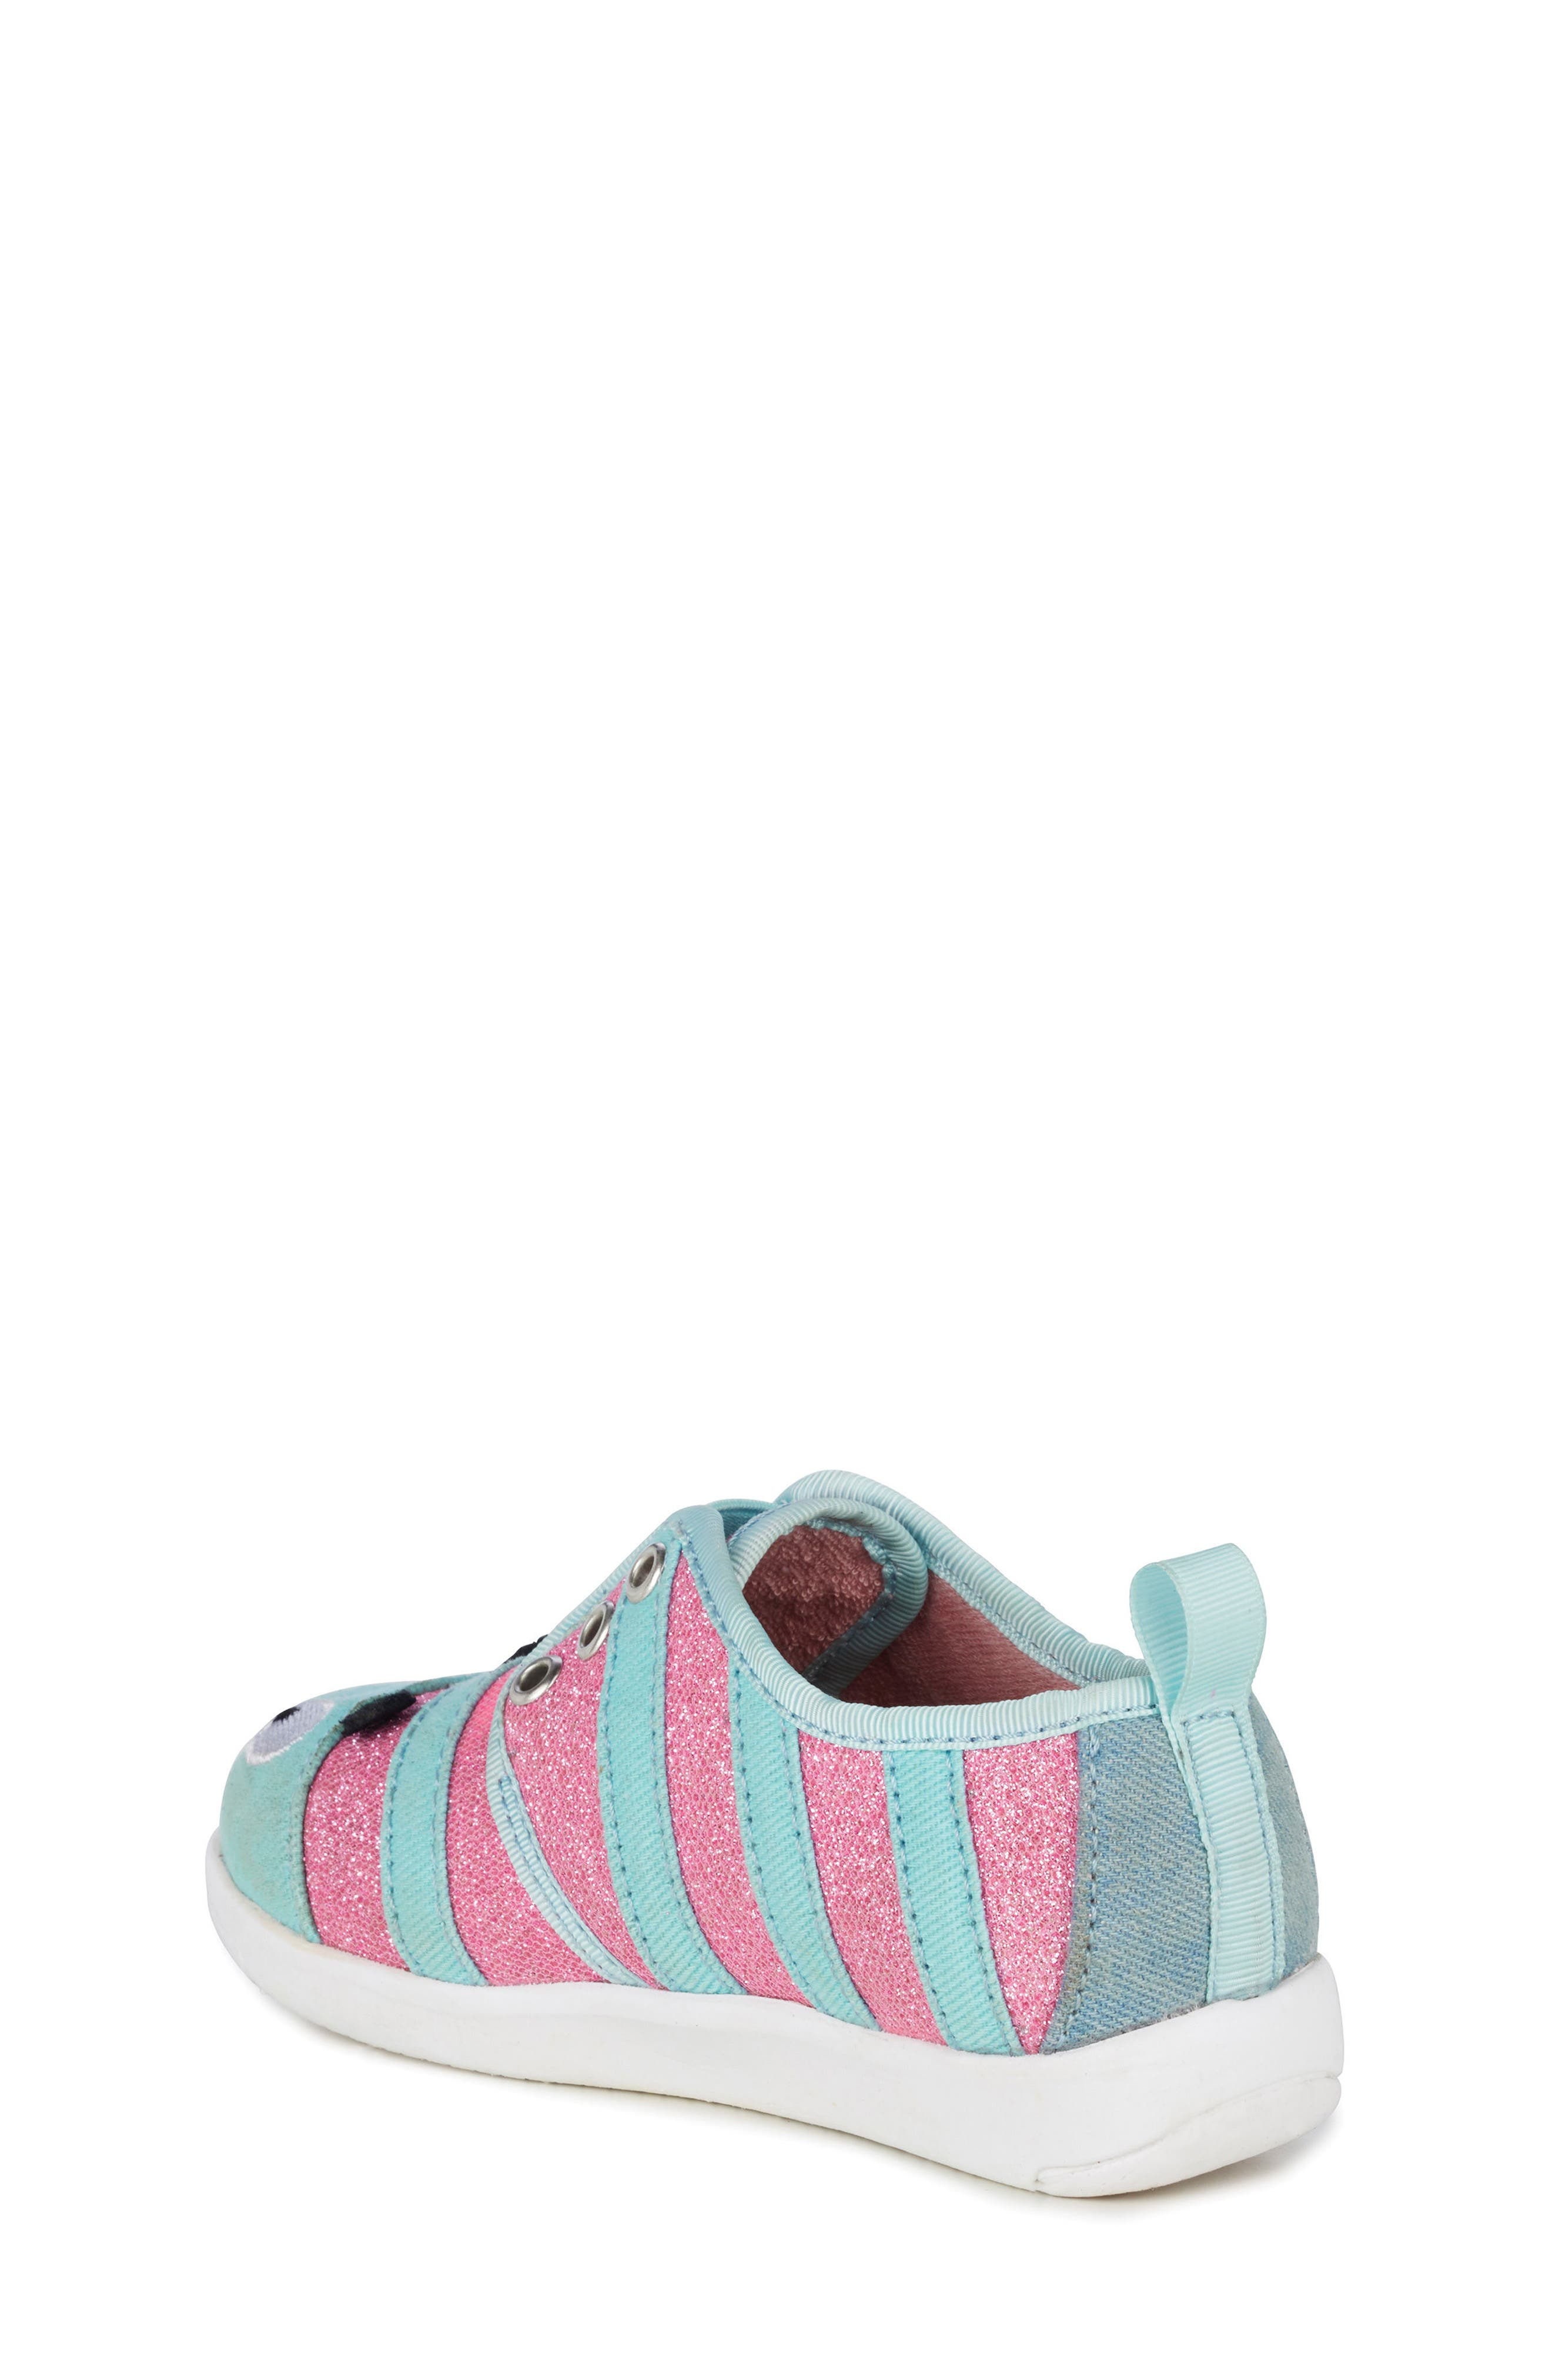 Caterpillar Laceless Sneaker,                             Alternate thumbnail 2, color,                             650